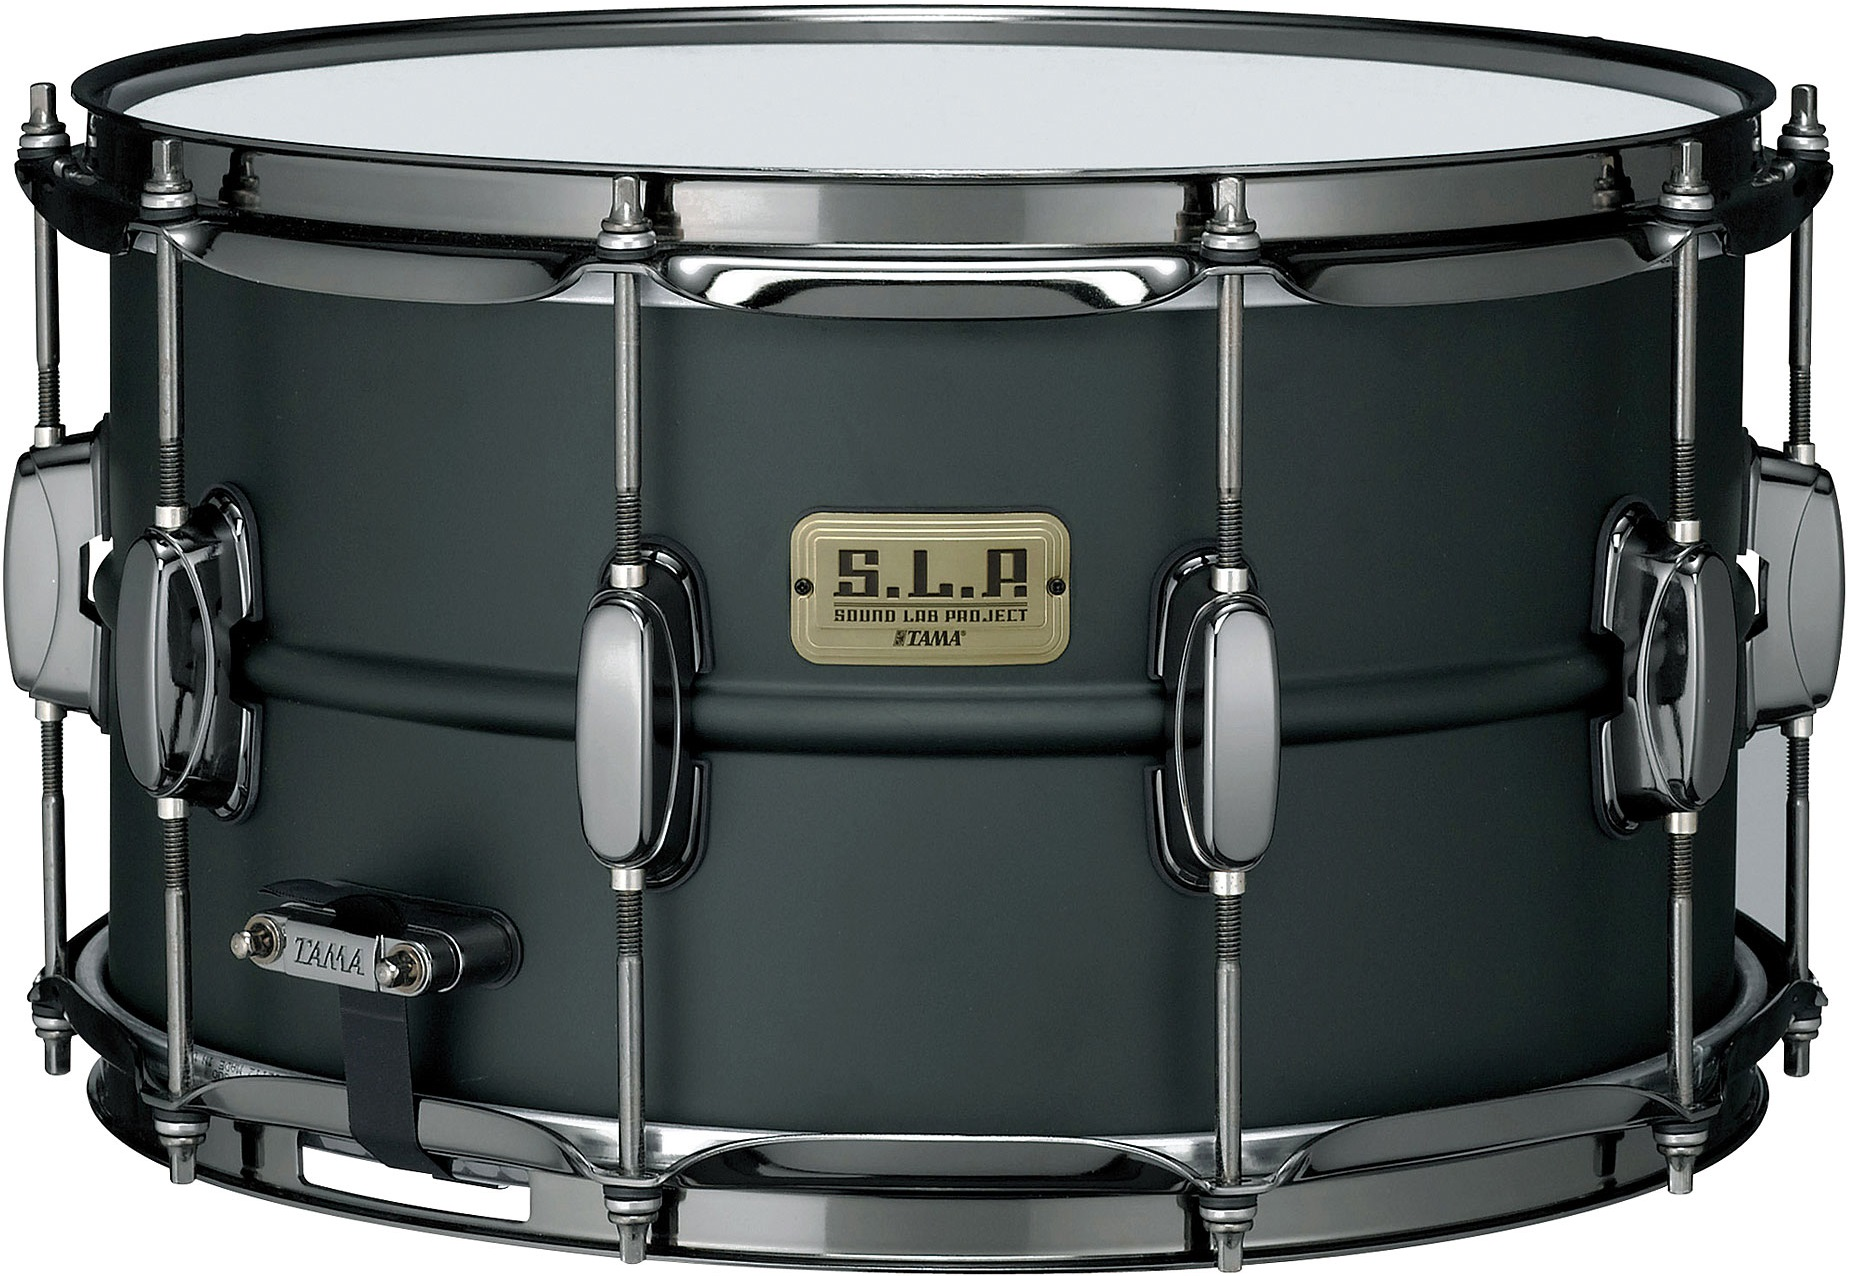 "Fotografie Tama 14"" x 8"" Sound Lab Project Big black steel"